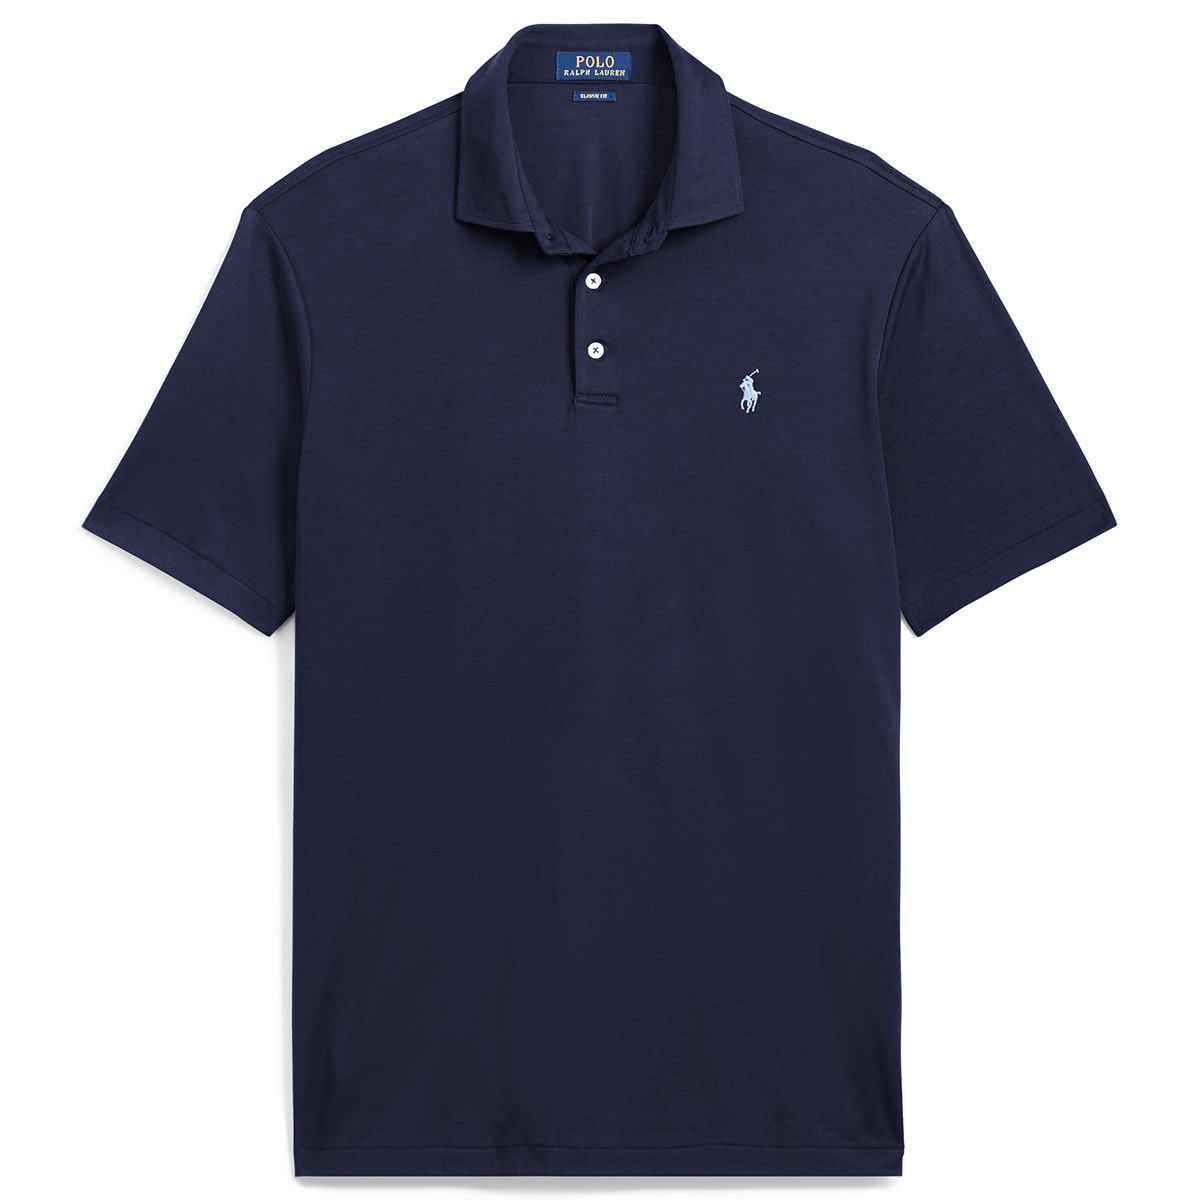 00528a8afb27 Polo Ralph Lauren - Men s Clothing and Shoes - Macy s